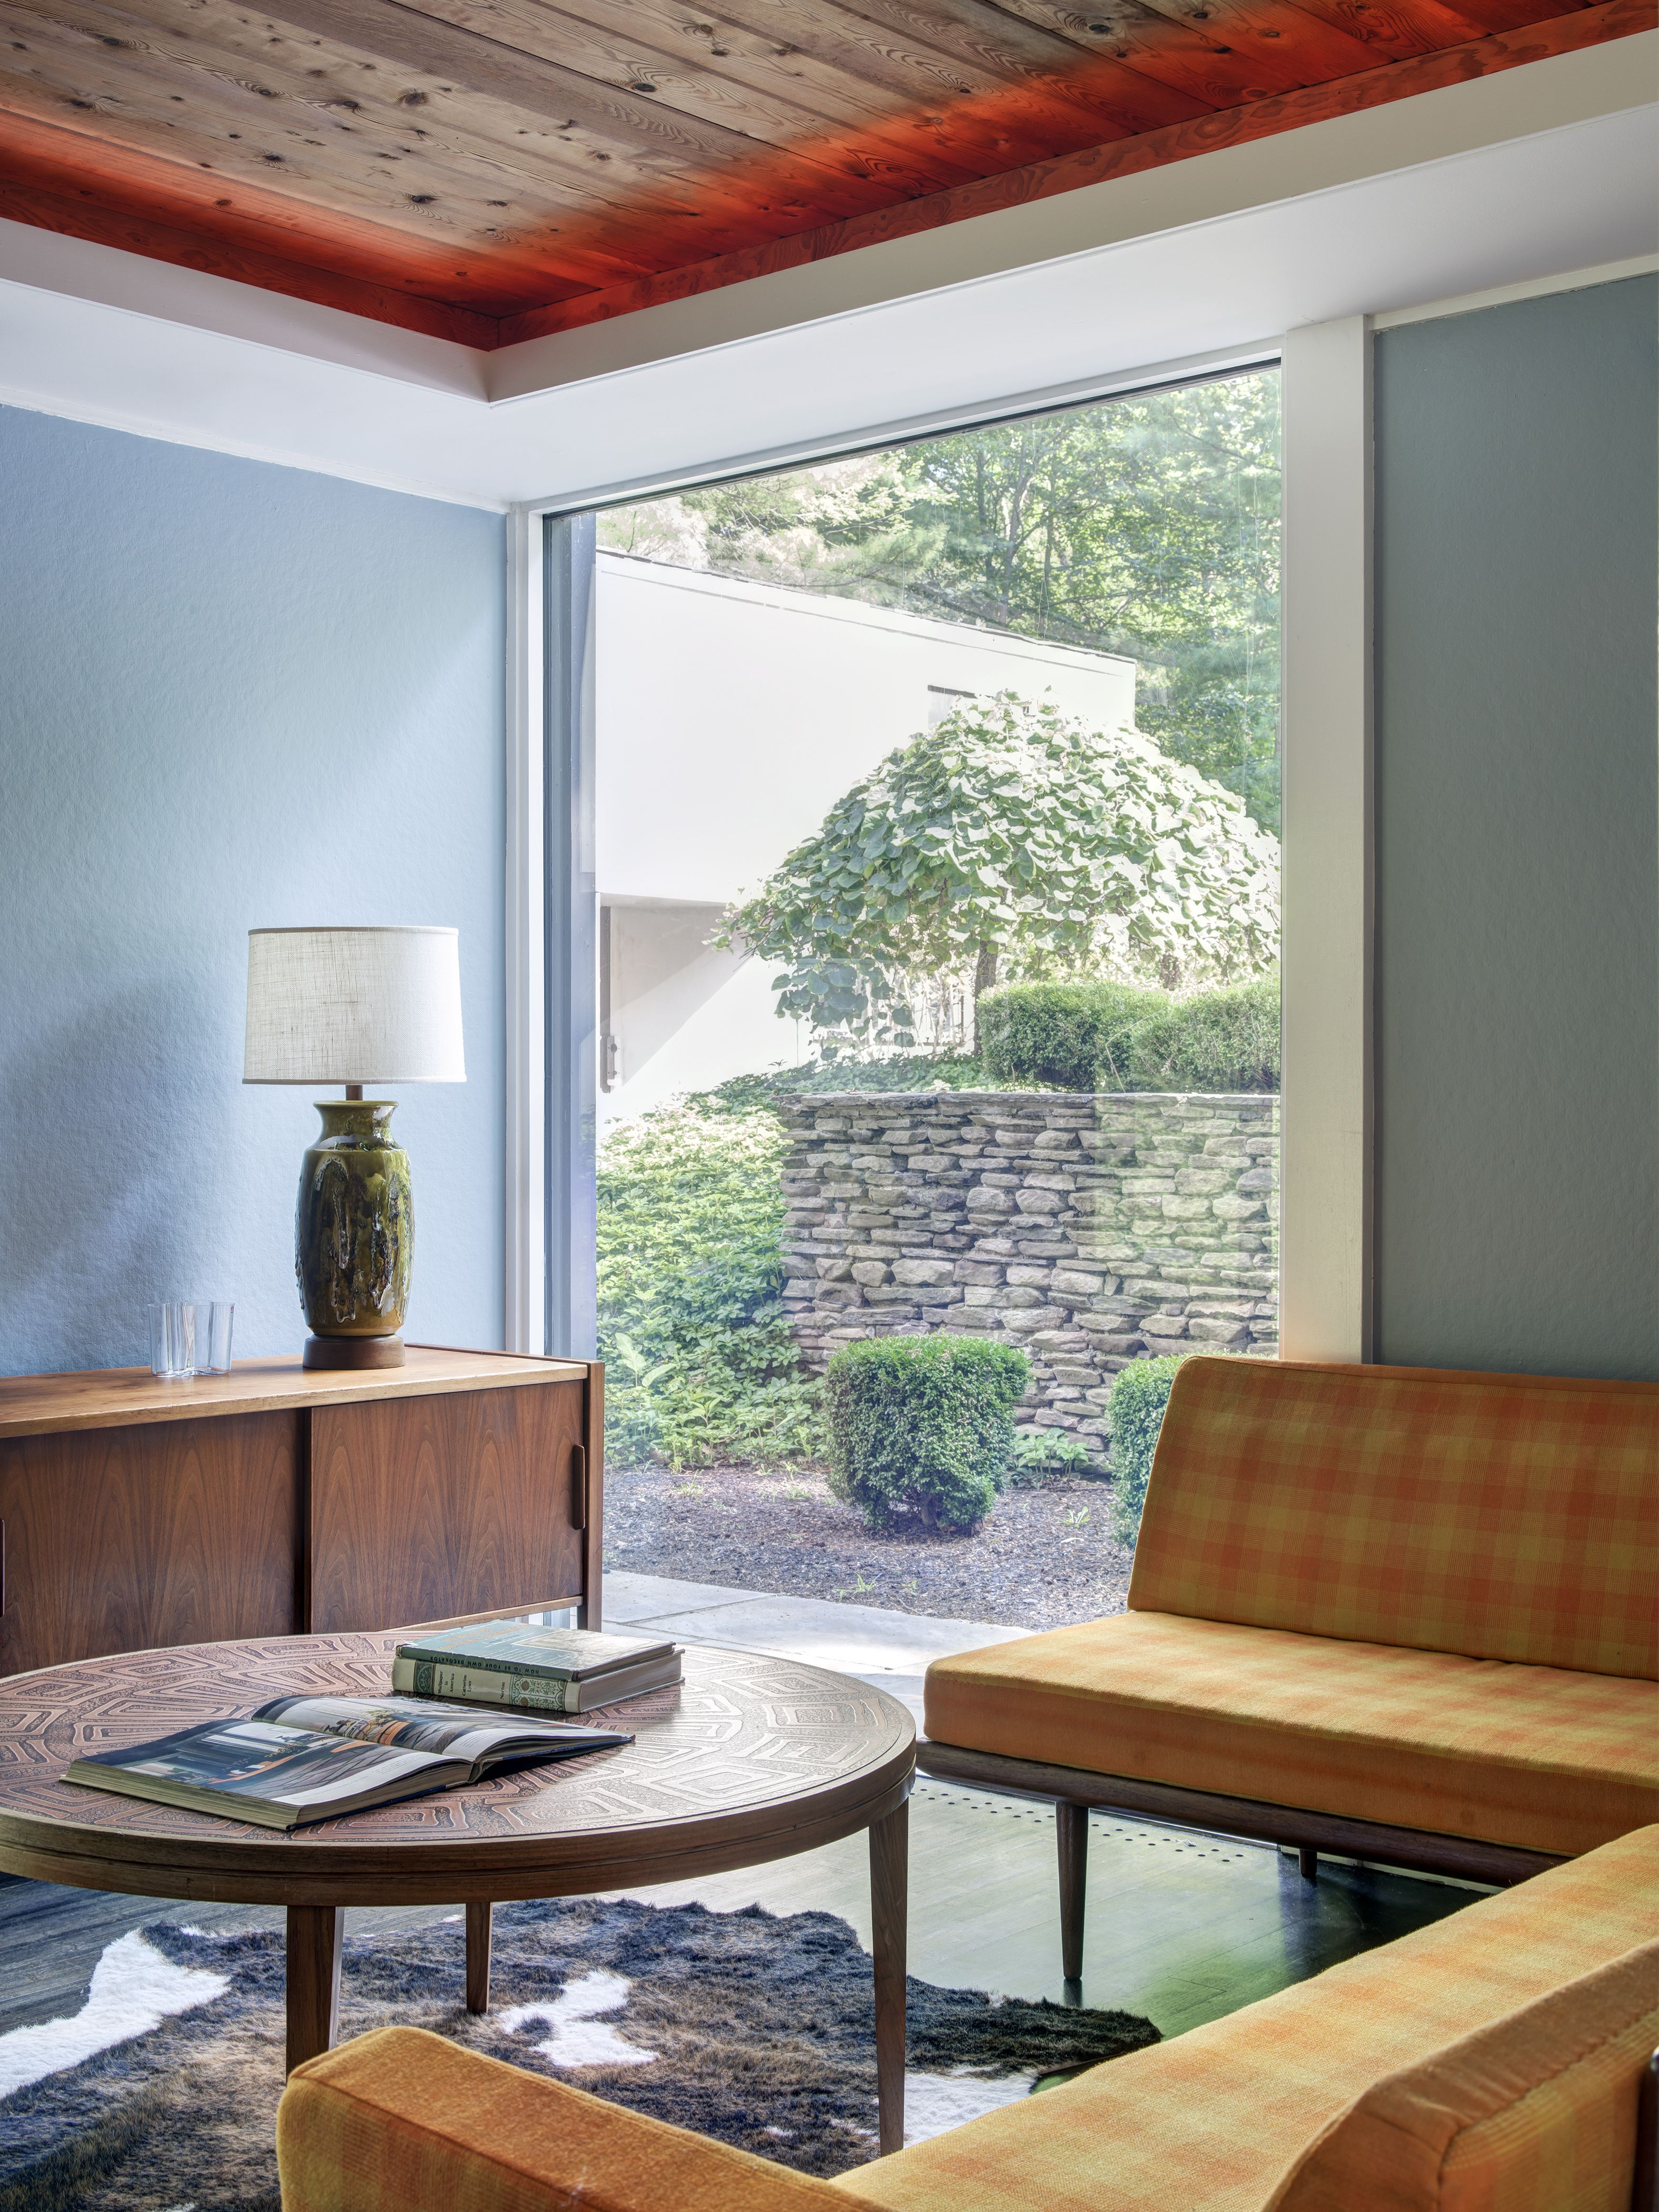 Marvelous midcentury home outside nyc wants 17m mid